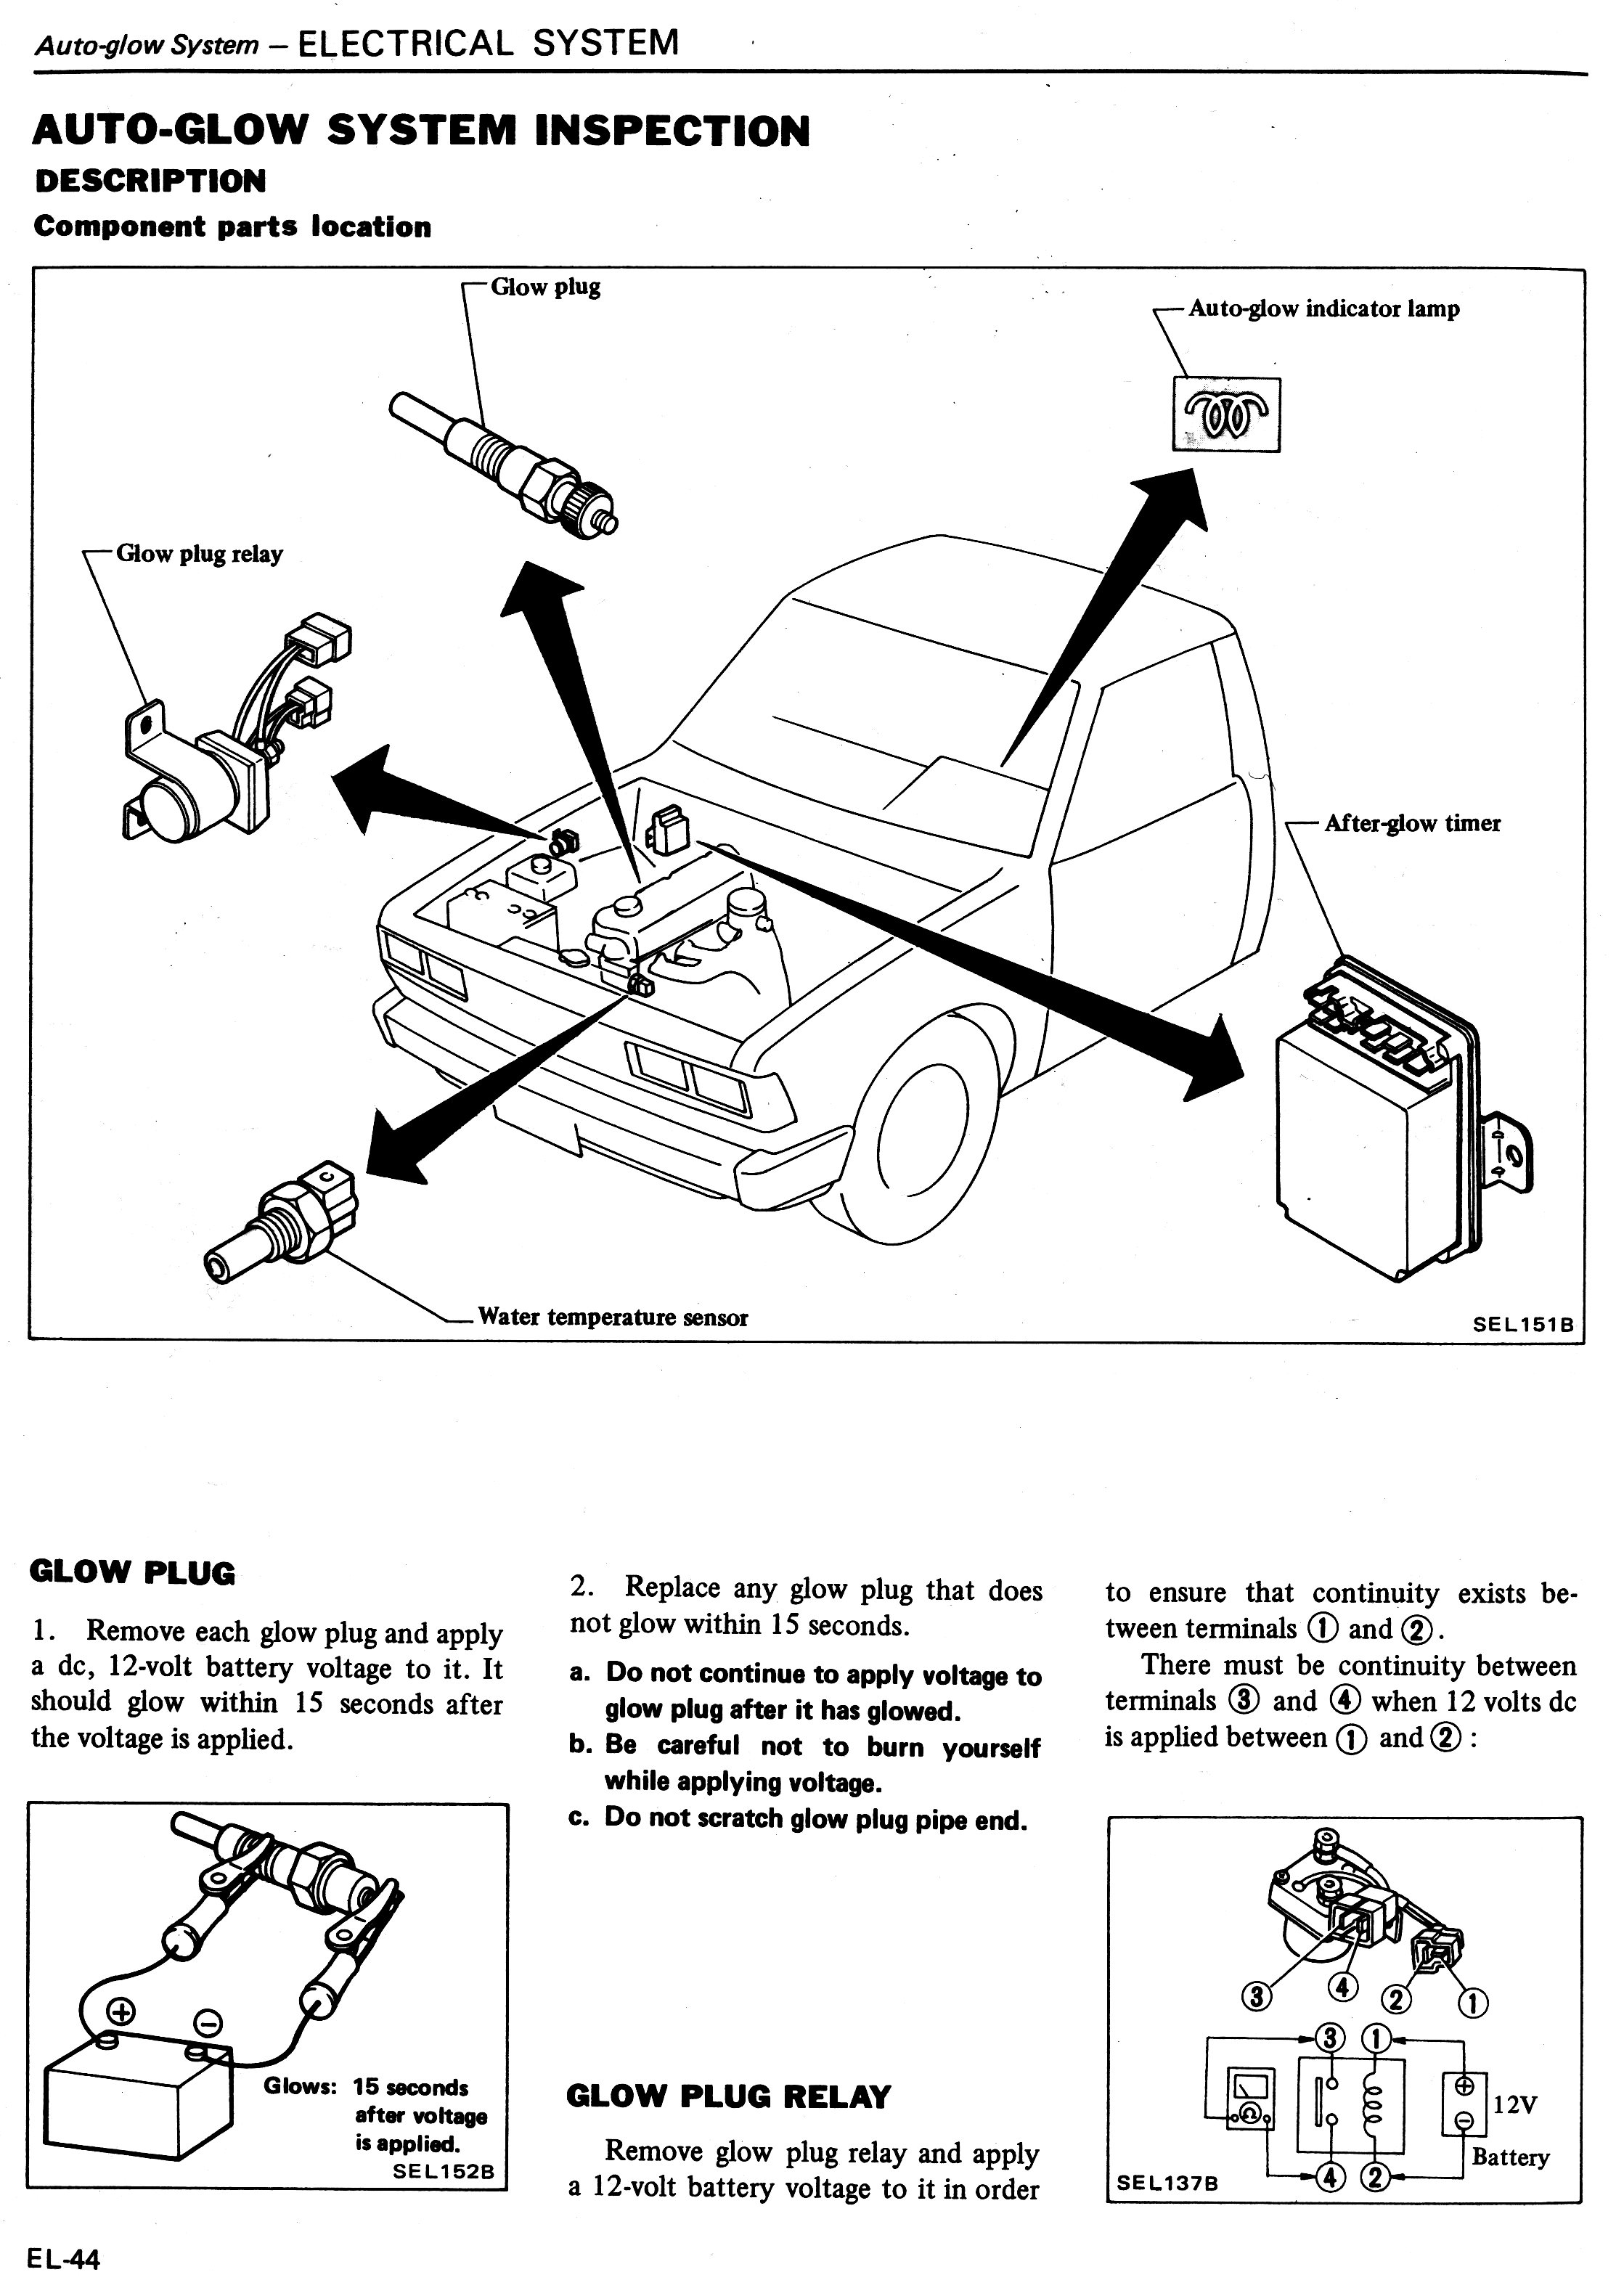 Datsun Workshop Manual 1982: Page 20-044